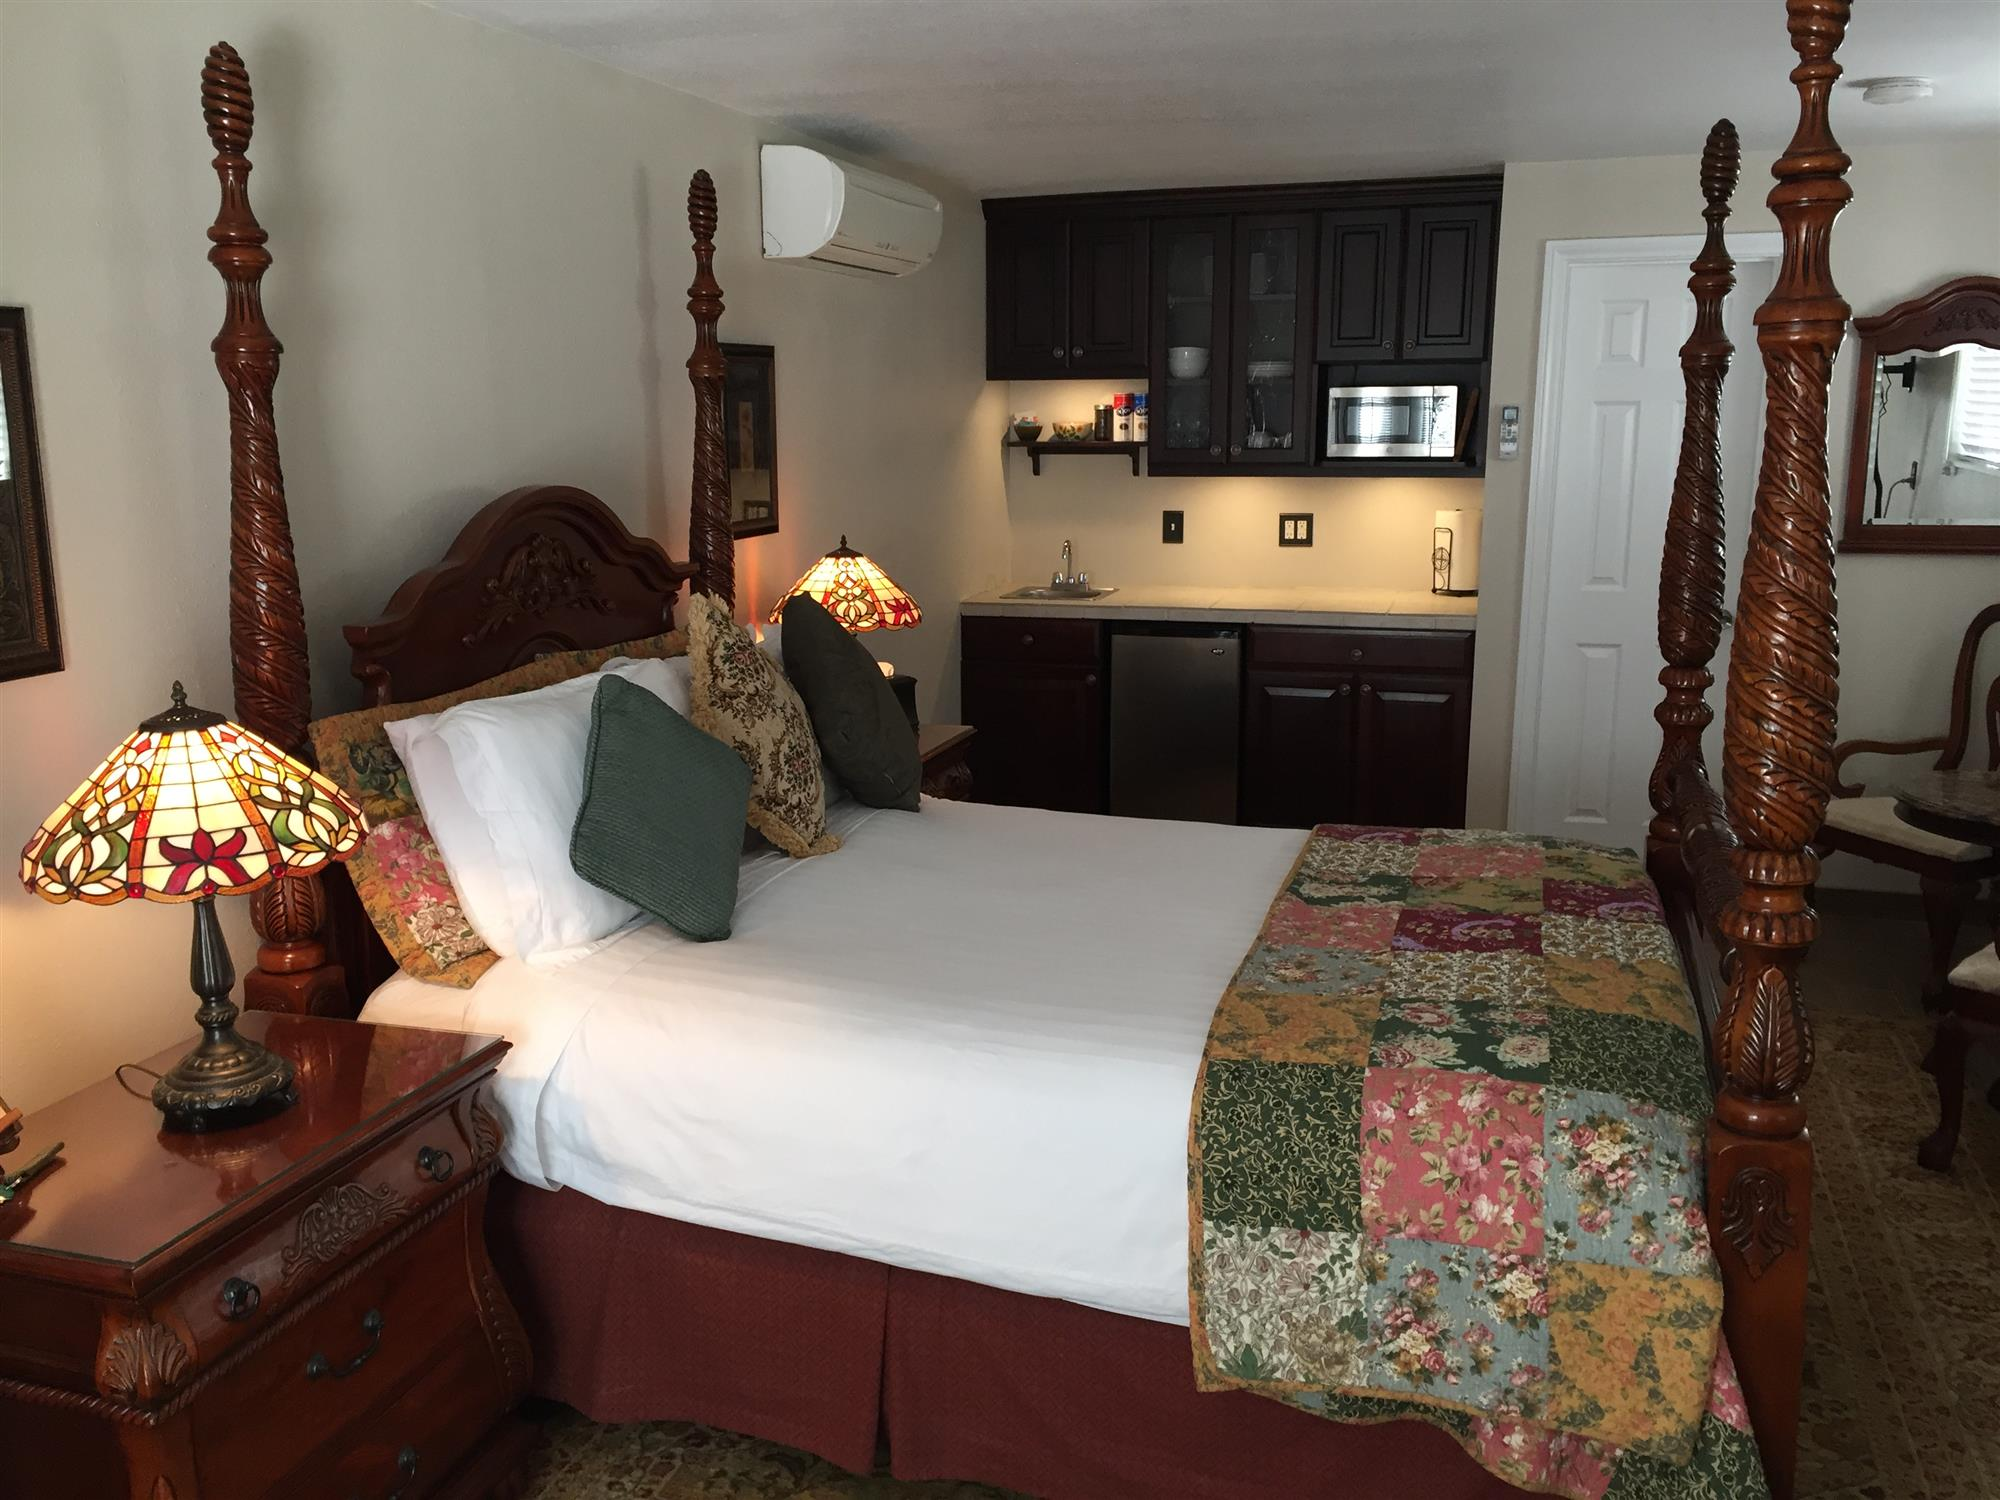 Image for Mukuntuweap Canyon Queen Suite